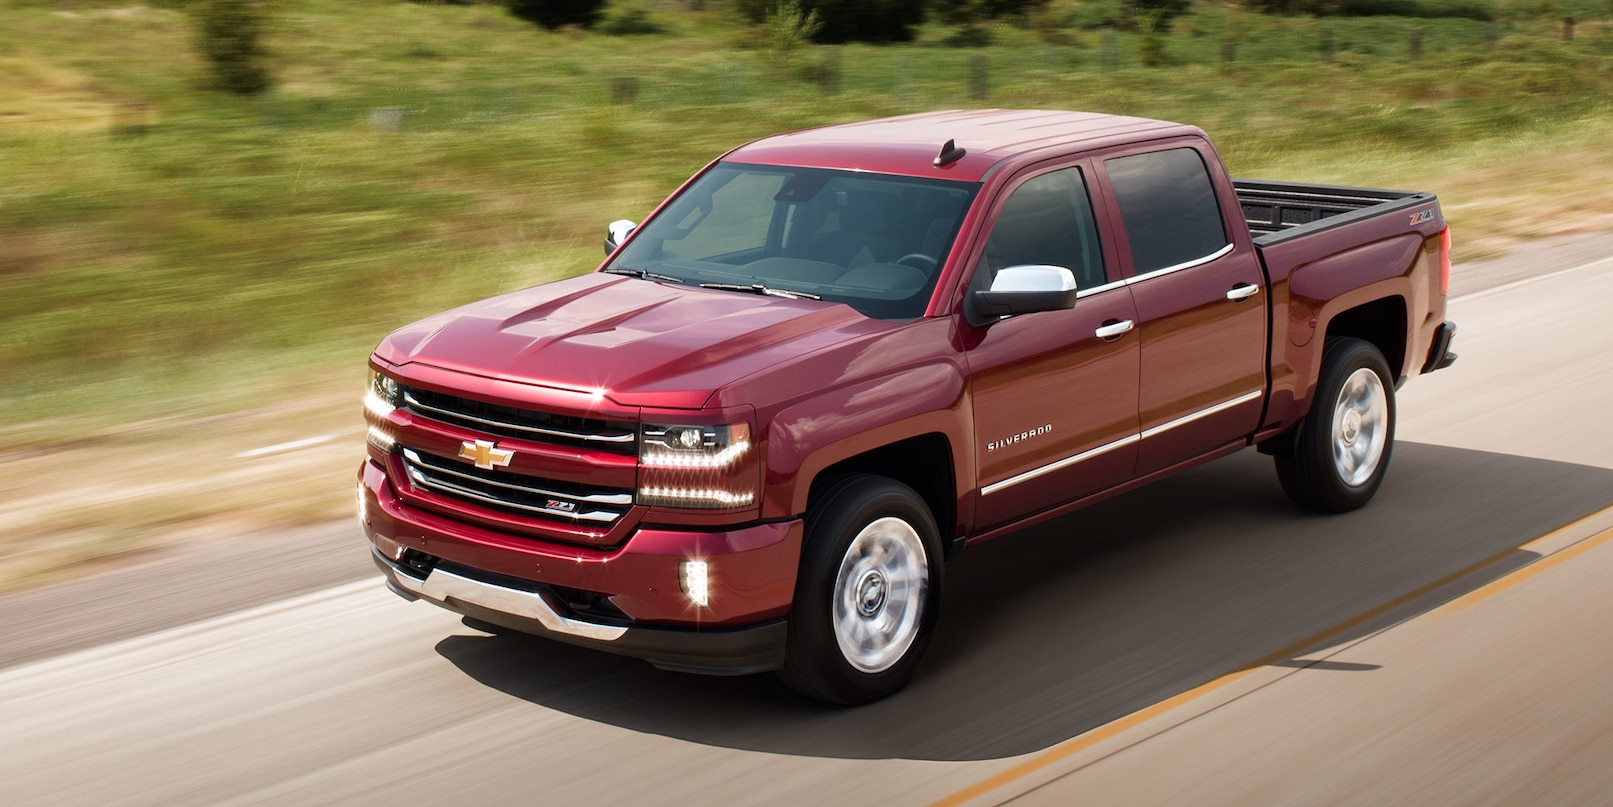 2018 Chevrolet Silverado 1500 for Sale in Blue Springs, MO